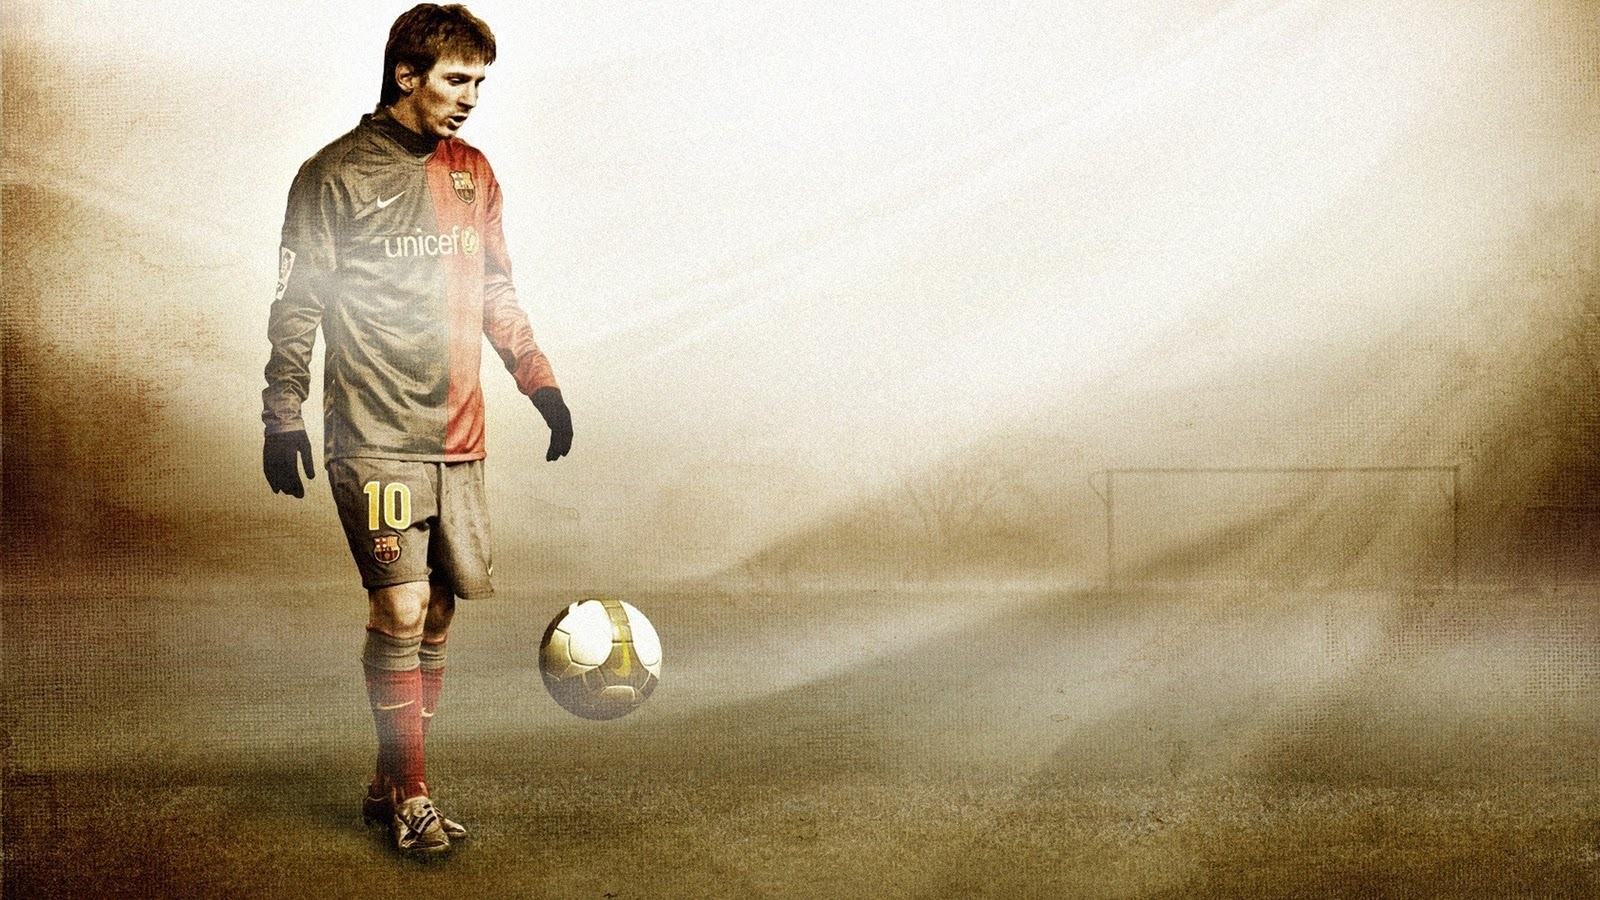 Lionel Messi HD Wallpaper - HD Wallpapers Inn